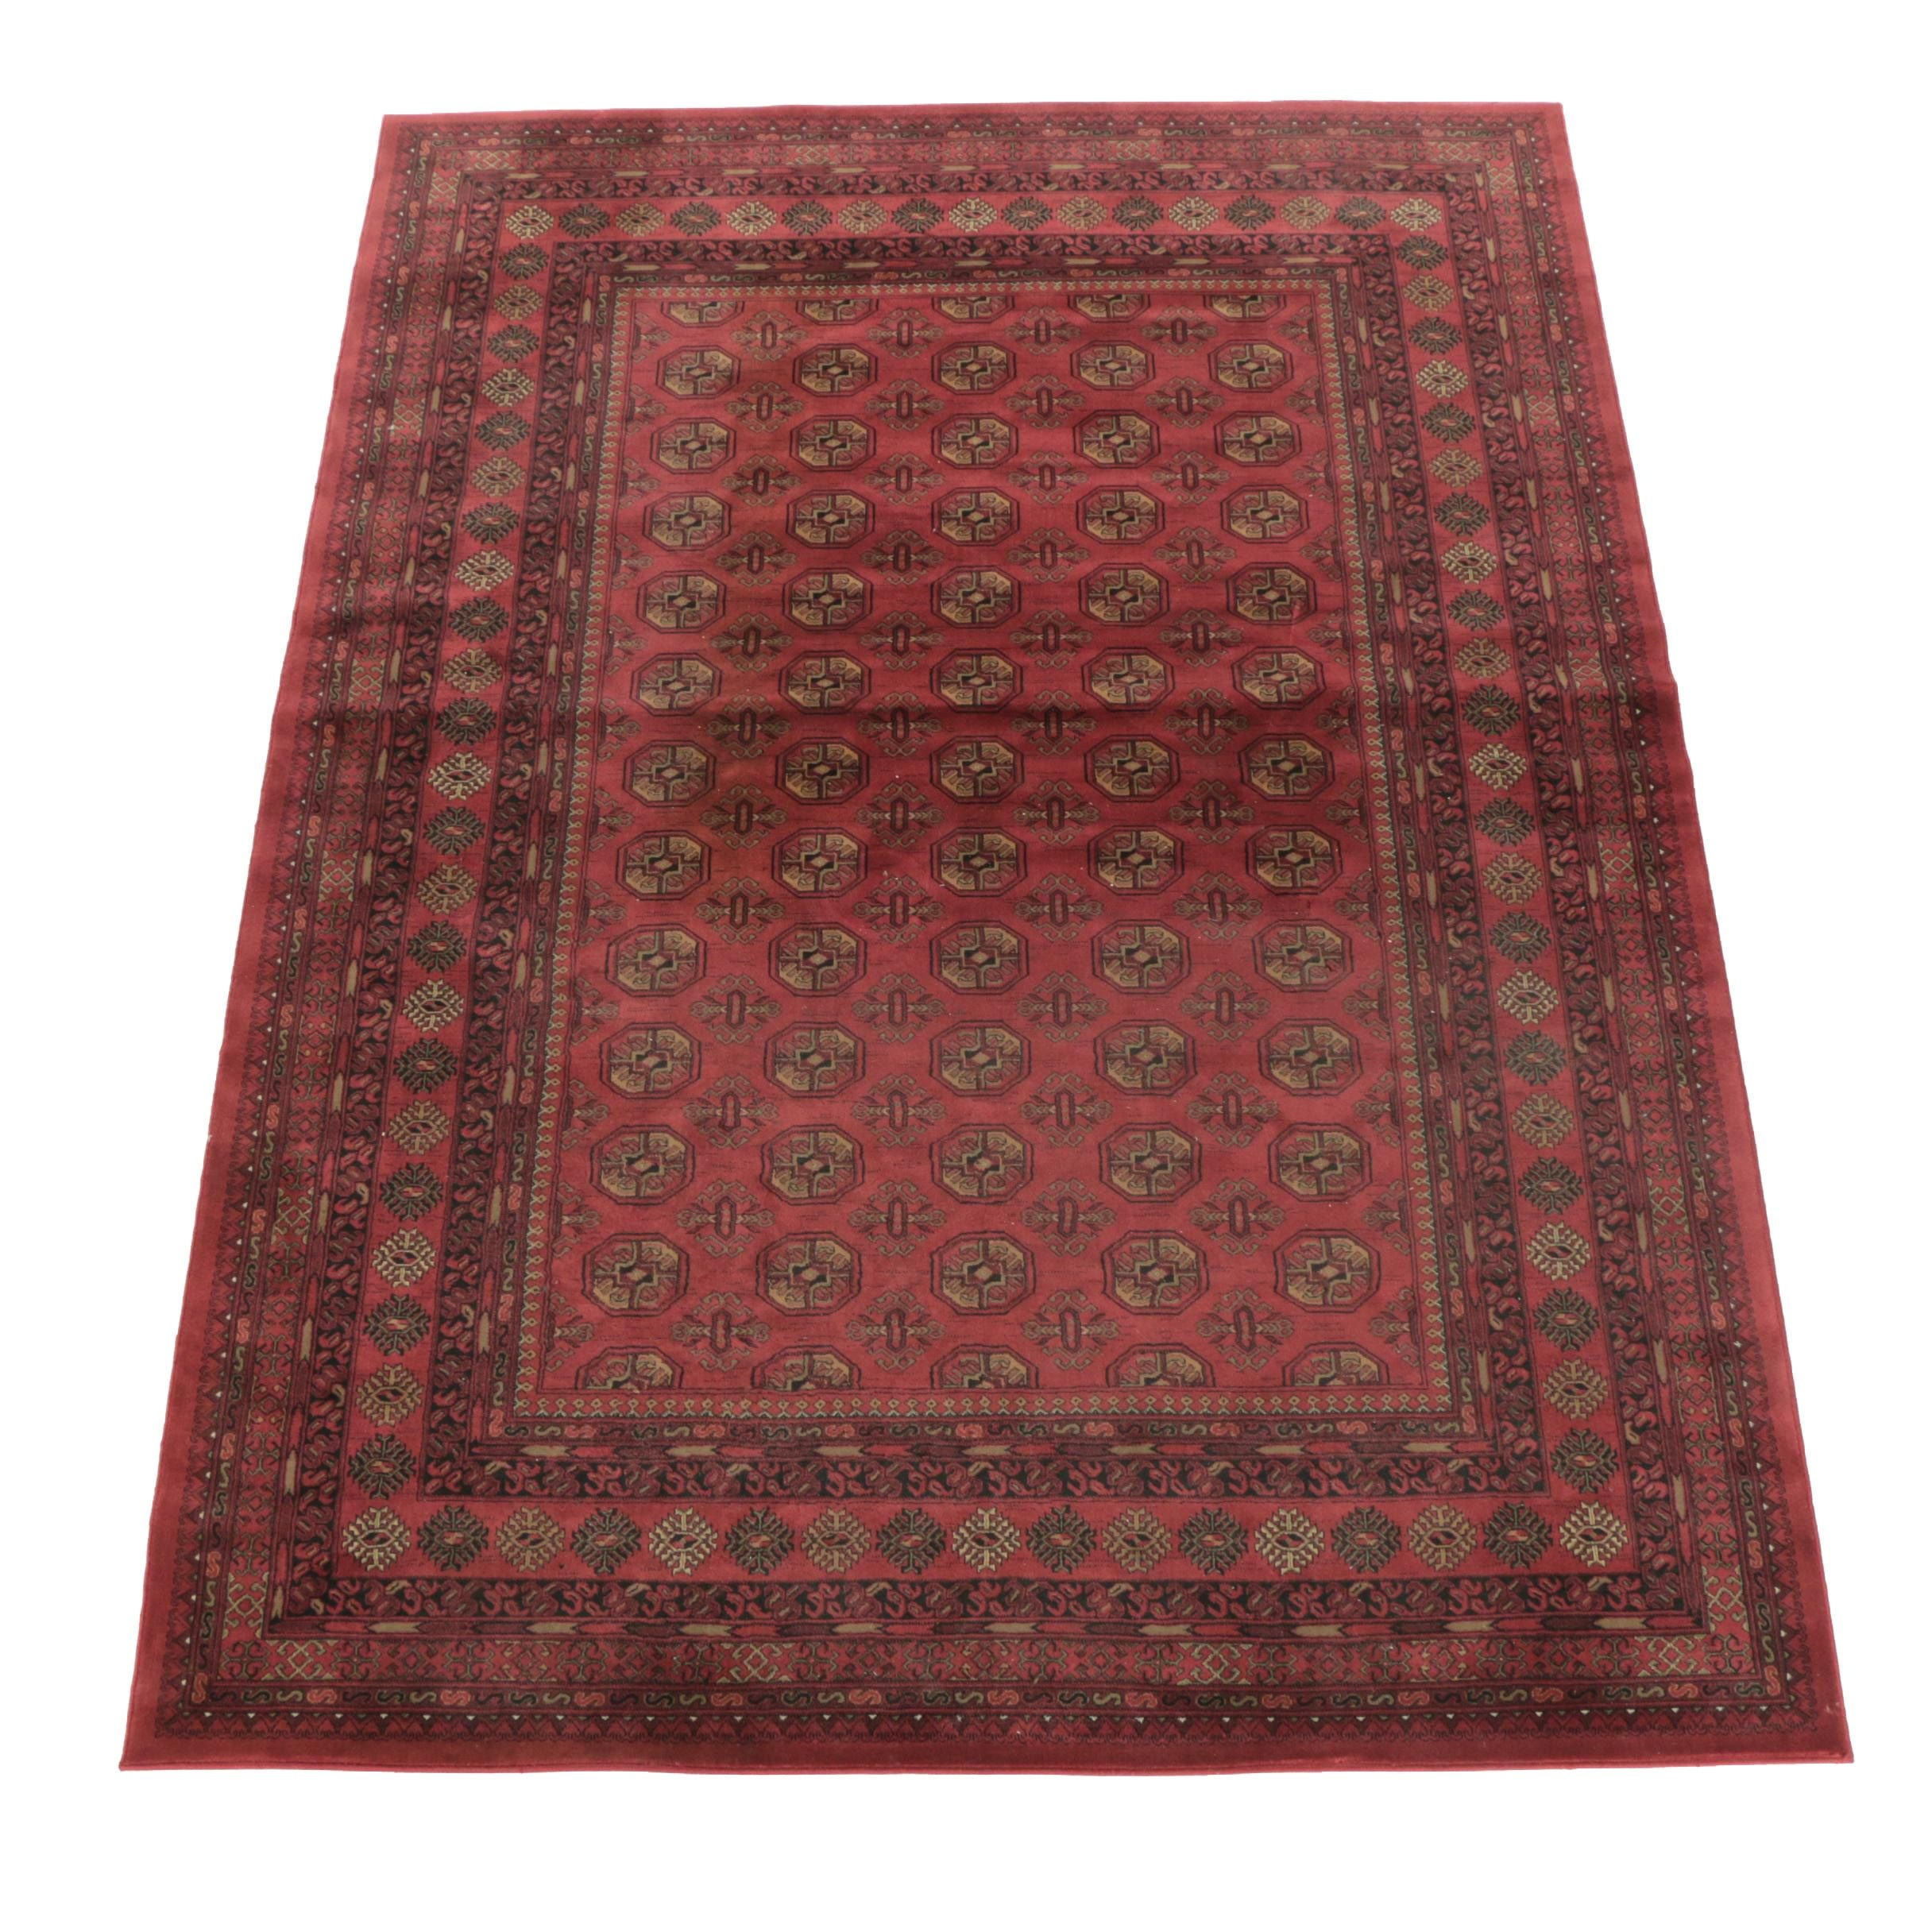 Powered-Loomed Bokhara-Style Area Rug